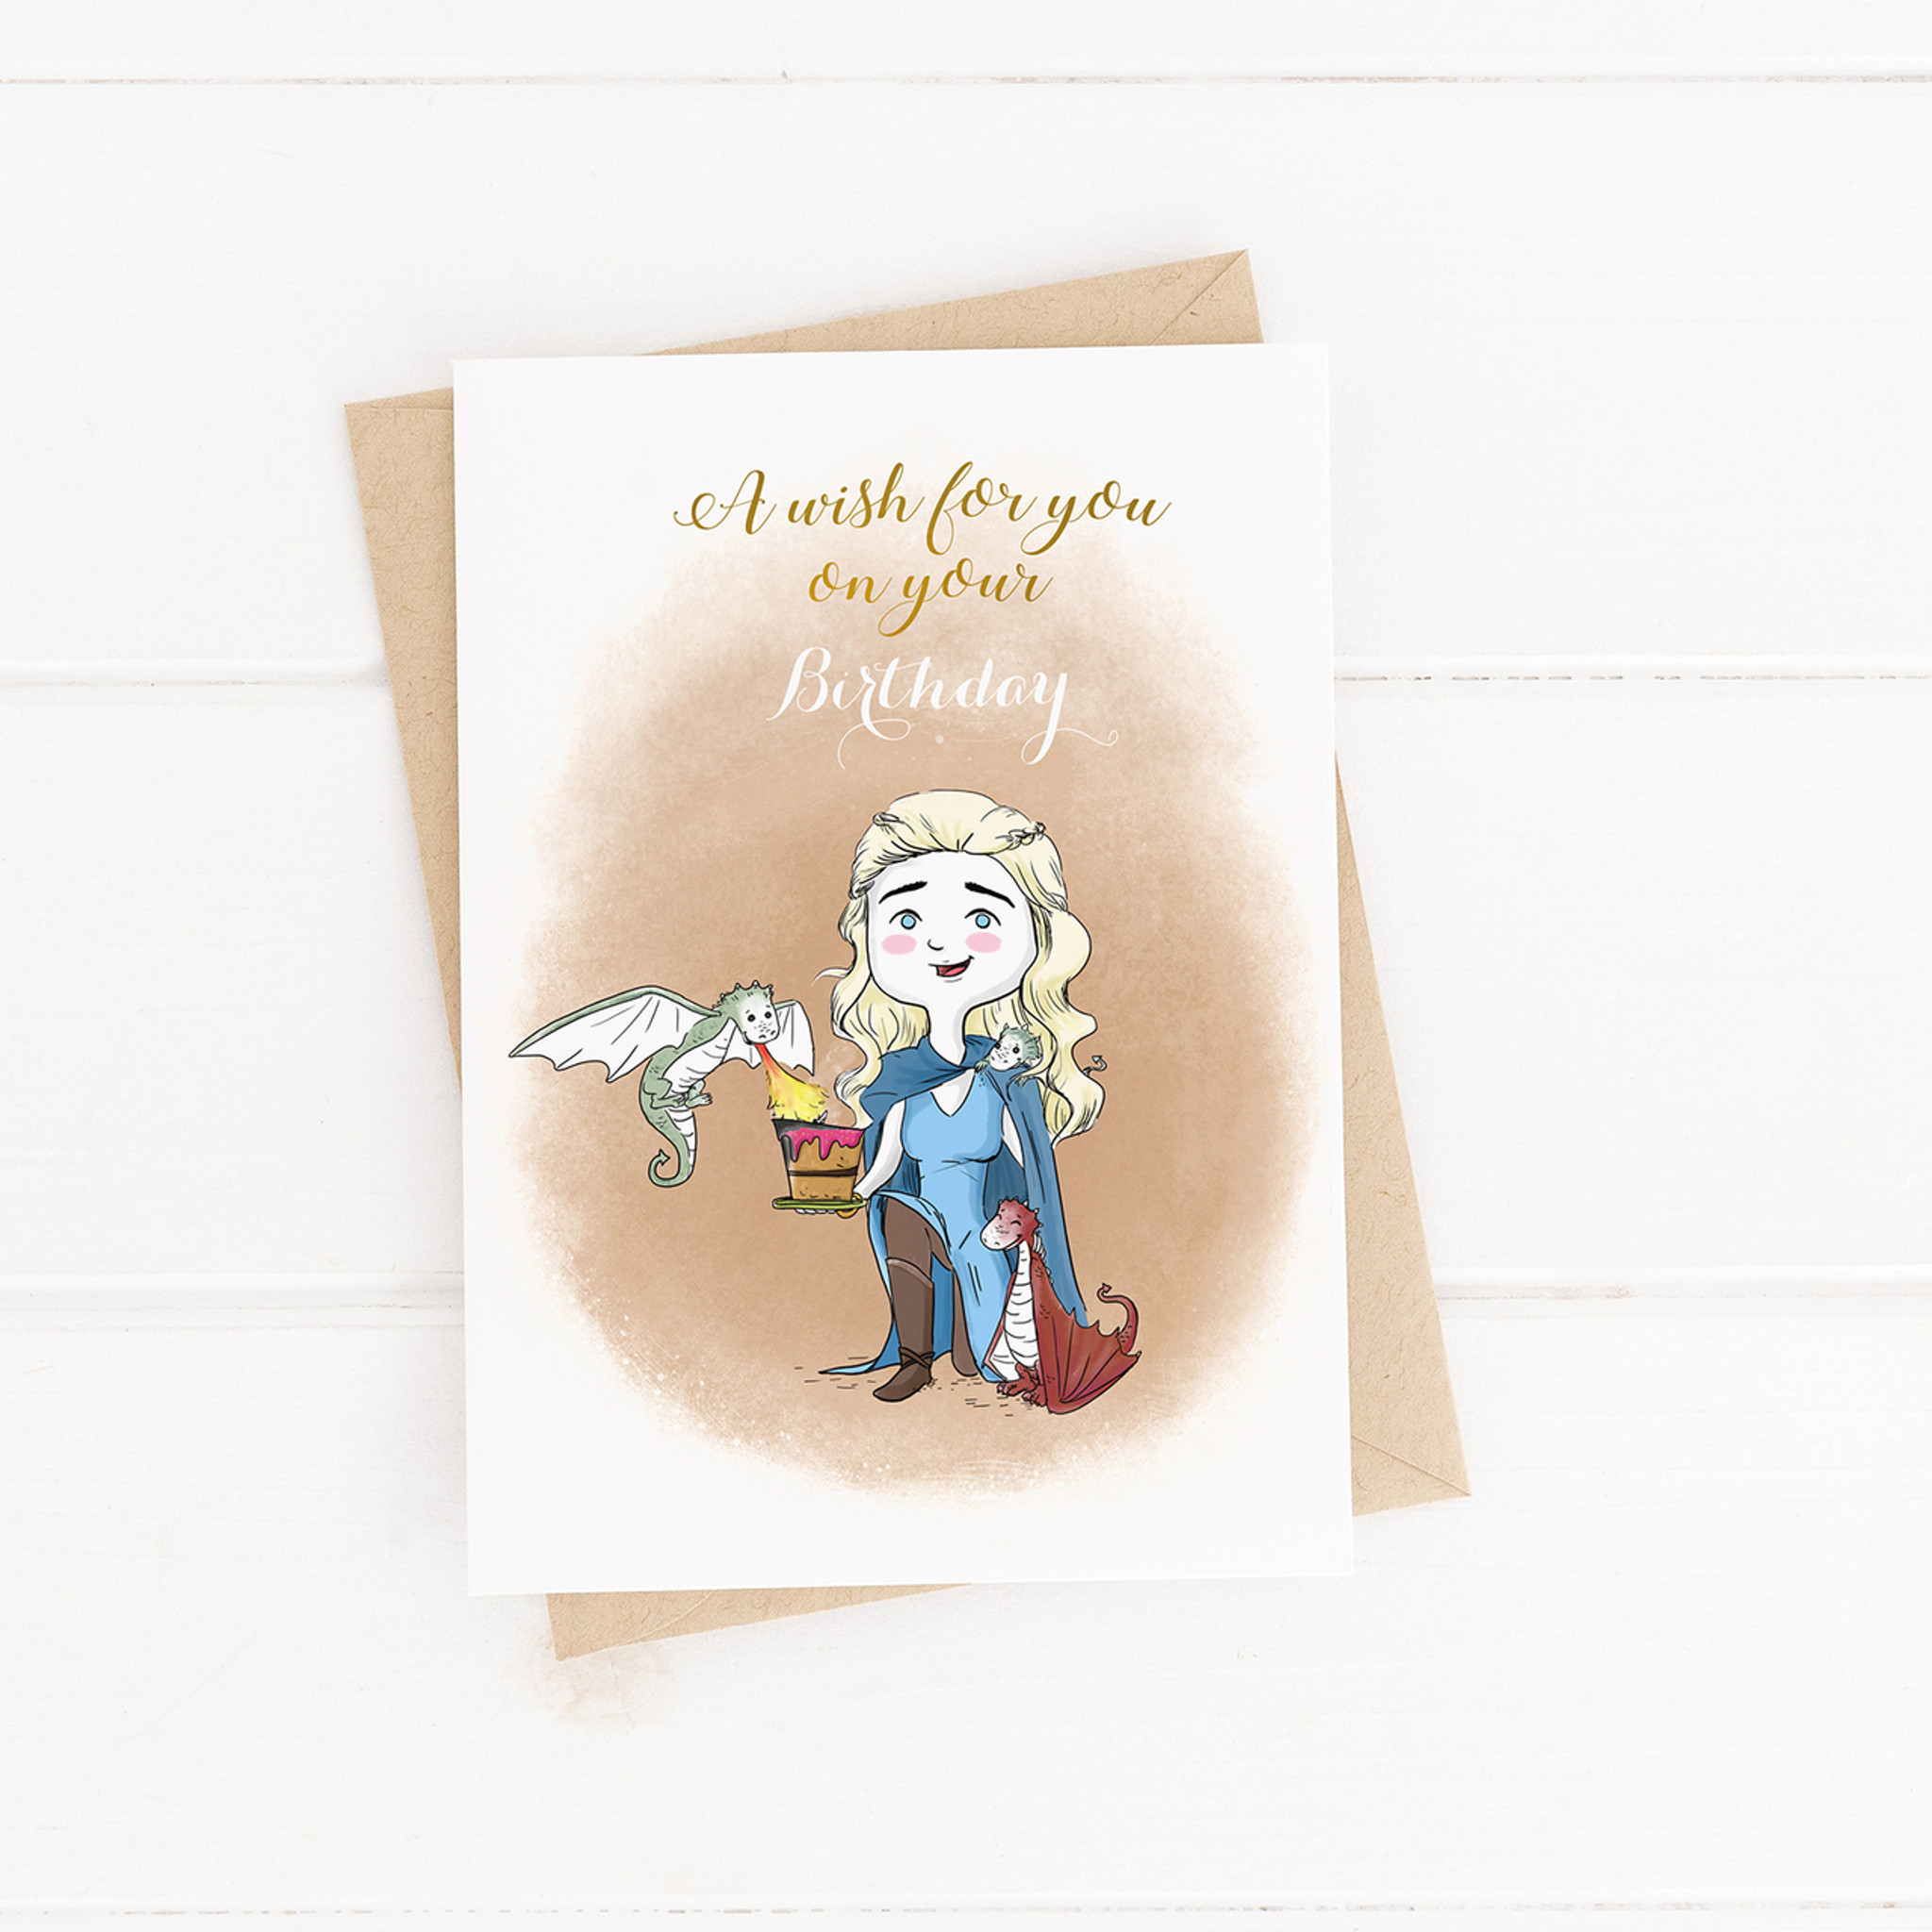 image regarding Funny Printable Cards identified as Humorous Joyful birthday, Printable Card, Recreation of Thrones, Khaleesi, Lovely Birthday Card, Birthday, Daenerys Targaryen